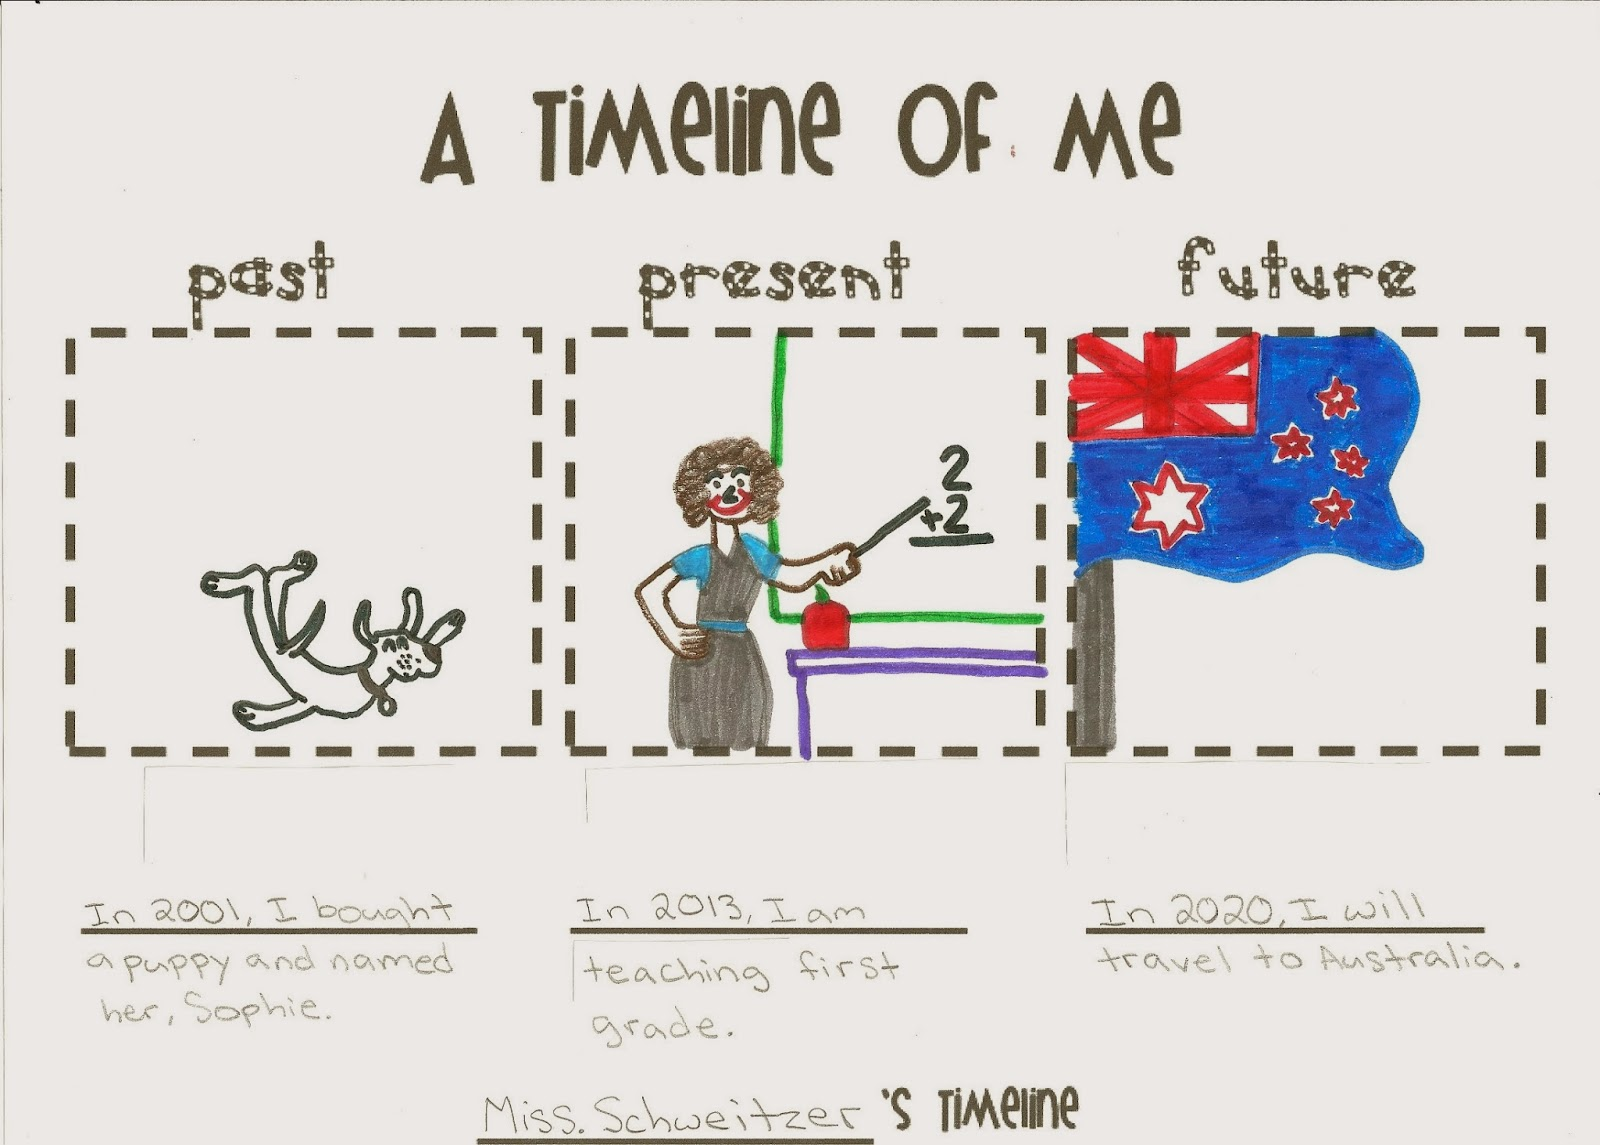 elizabeth mary a timeline about me